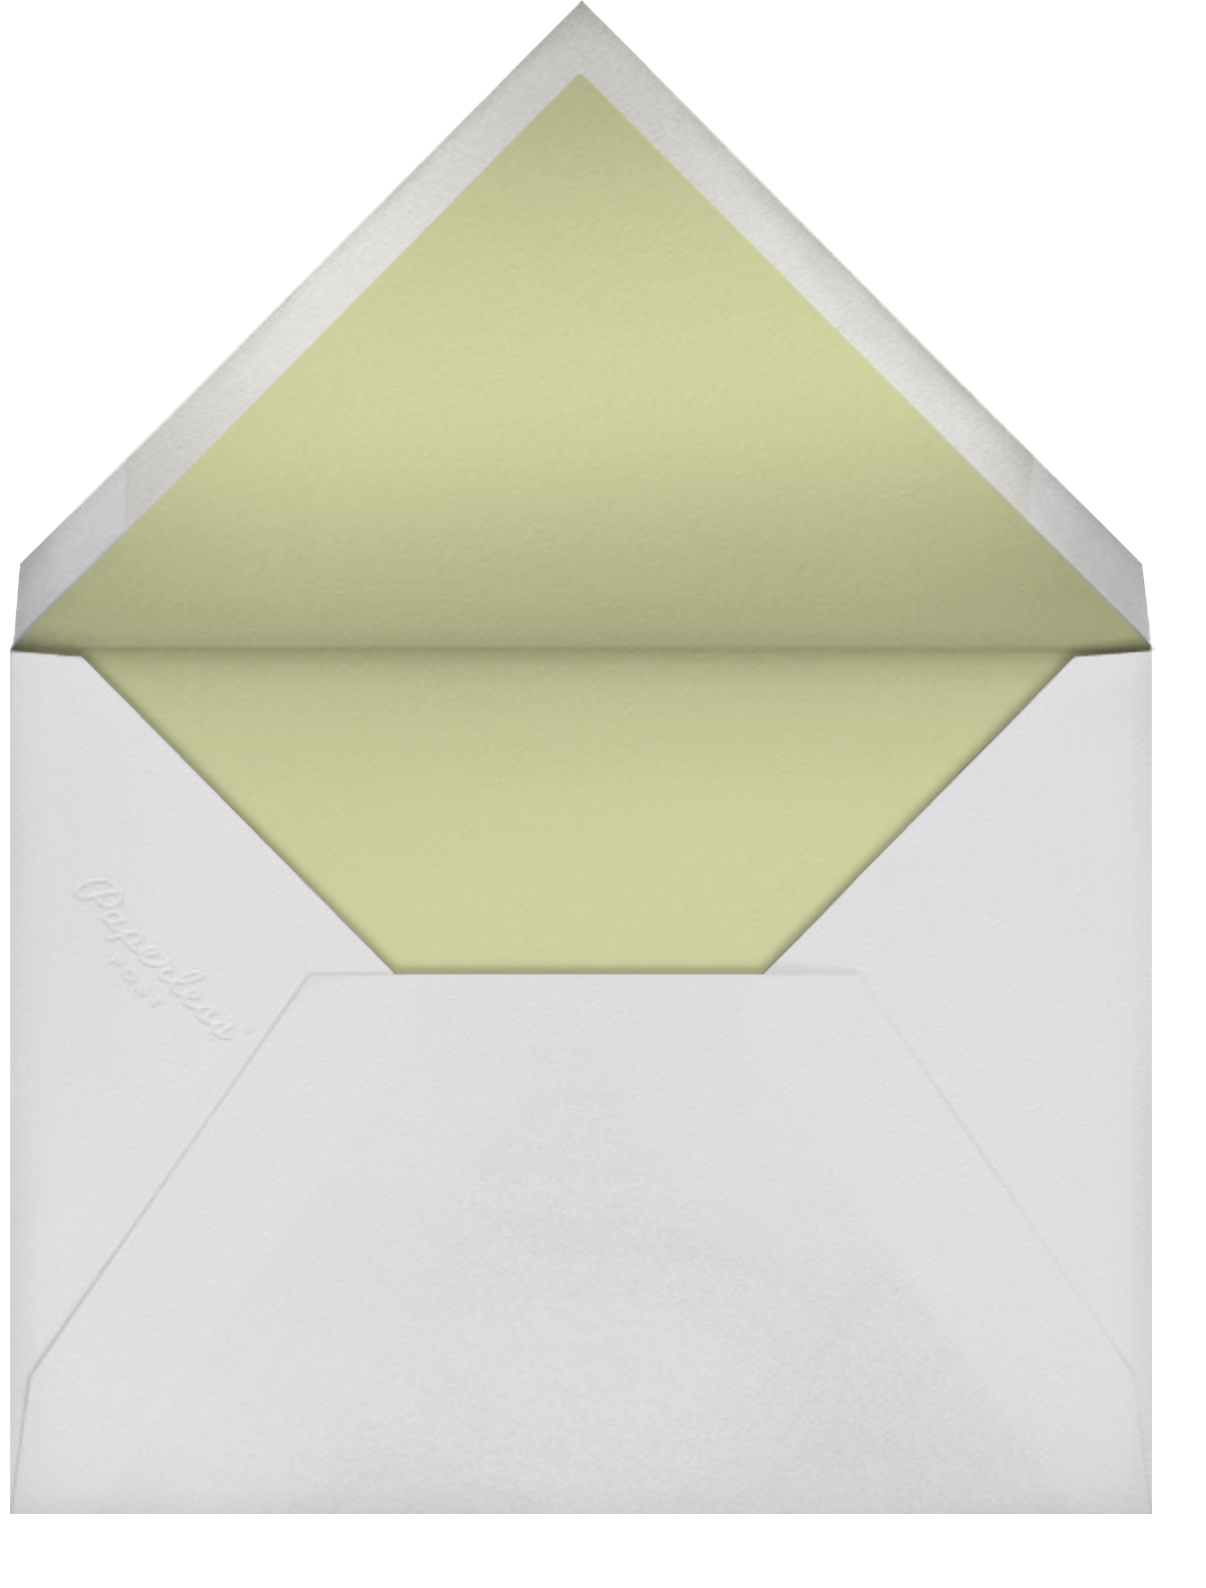 Wilcox - Celery - Paperless Post - Engagement party - envelope back